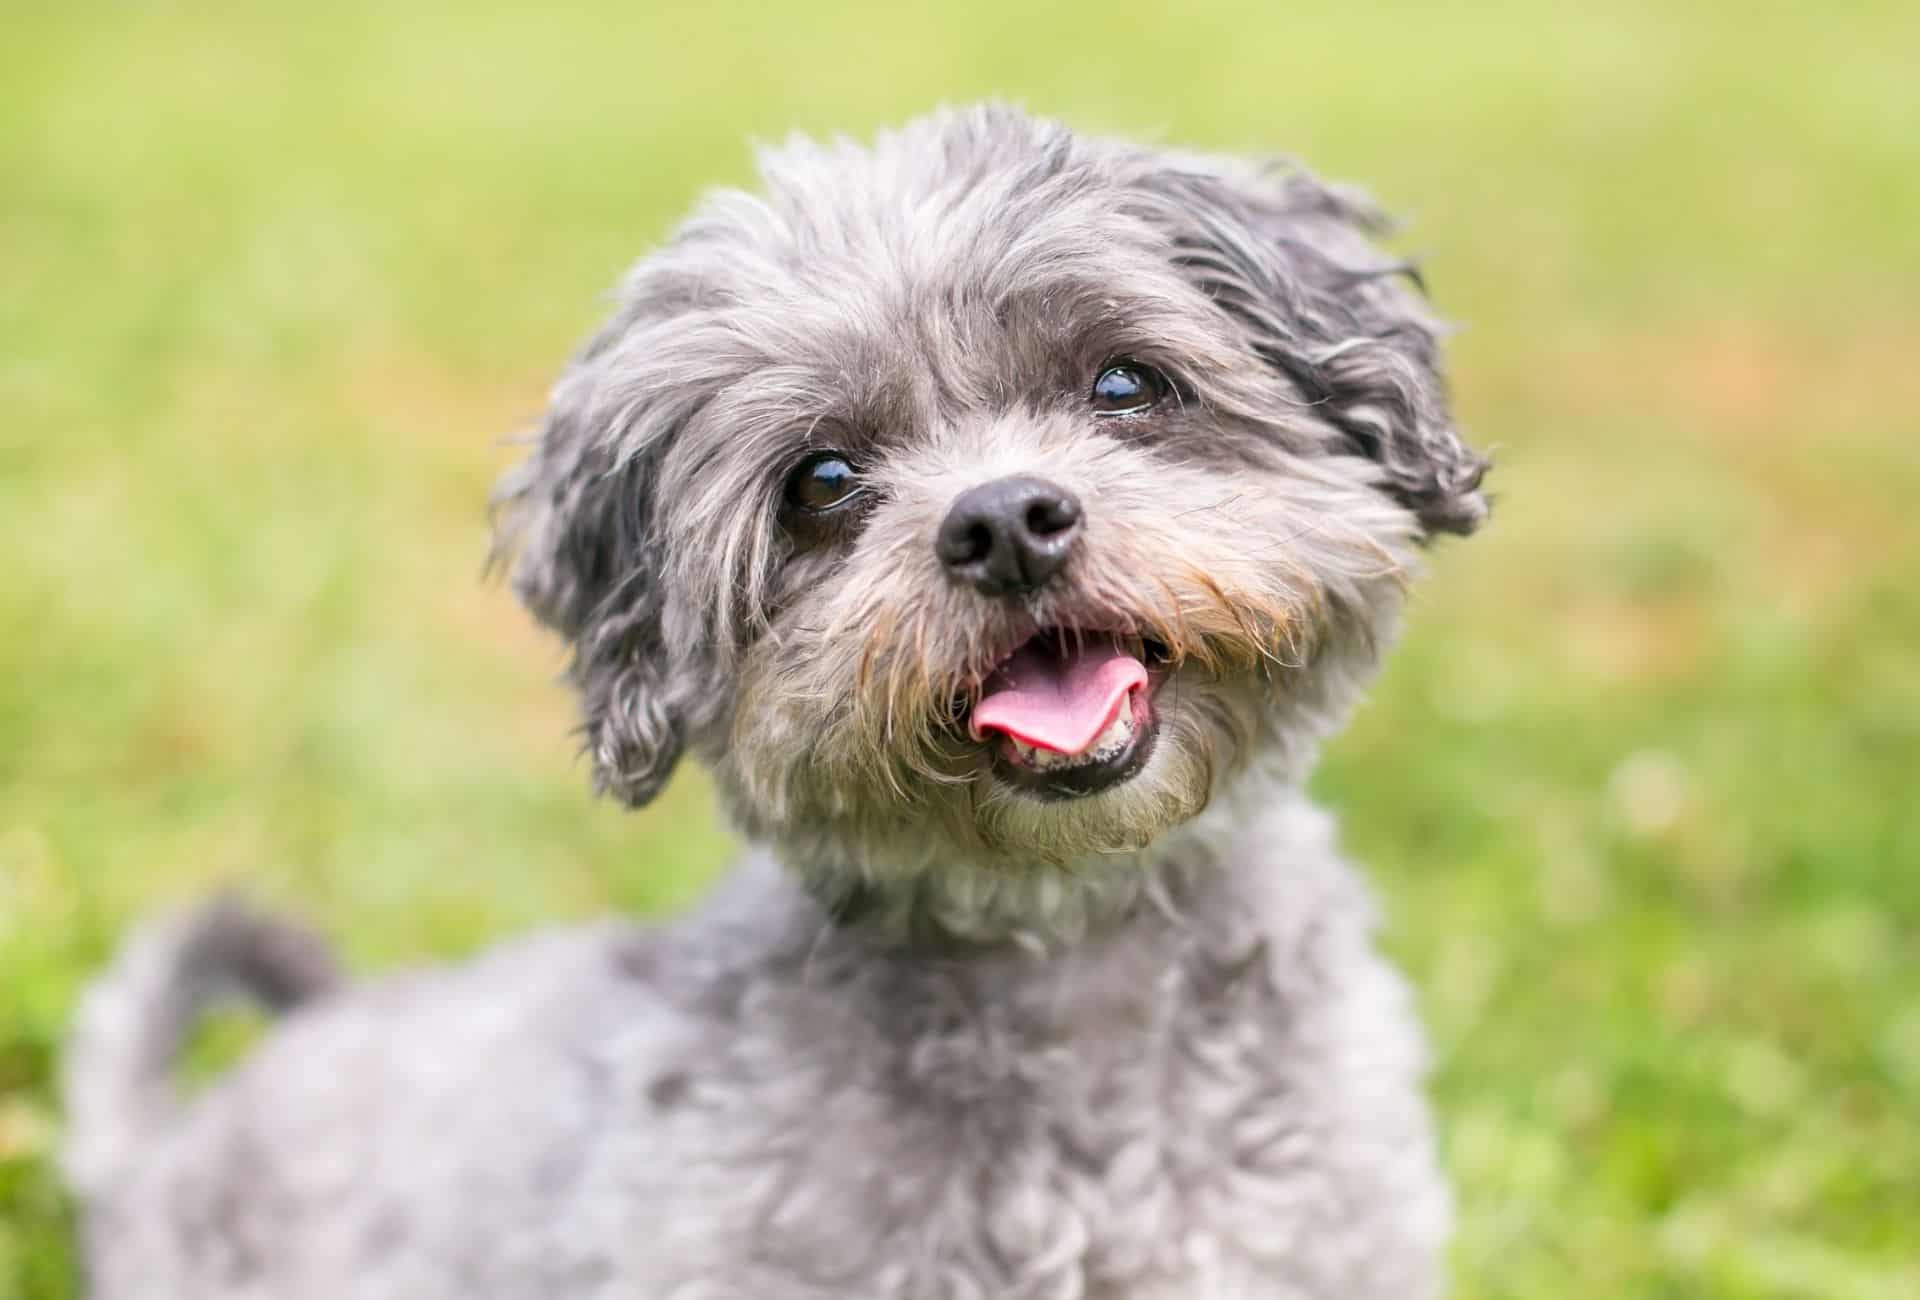 Shih Tzu Poodle mix with gray curly hair, a black nose and brown around the mouth.